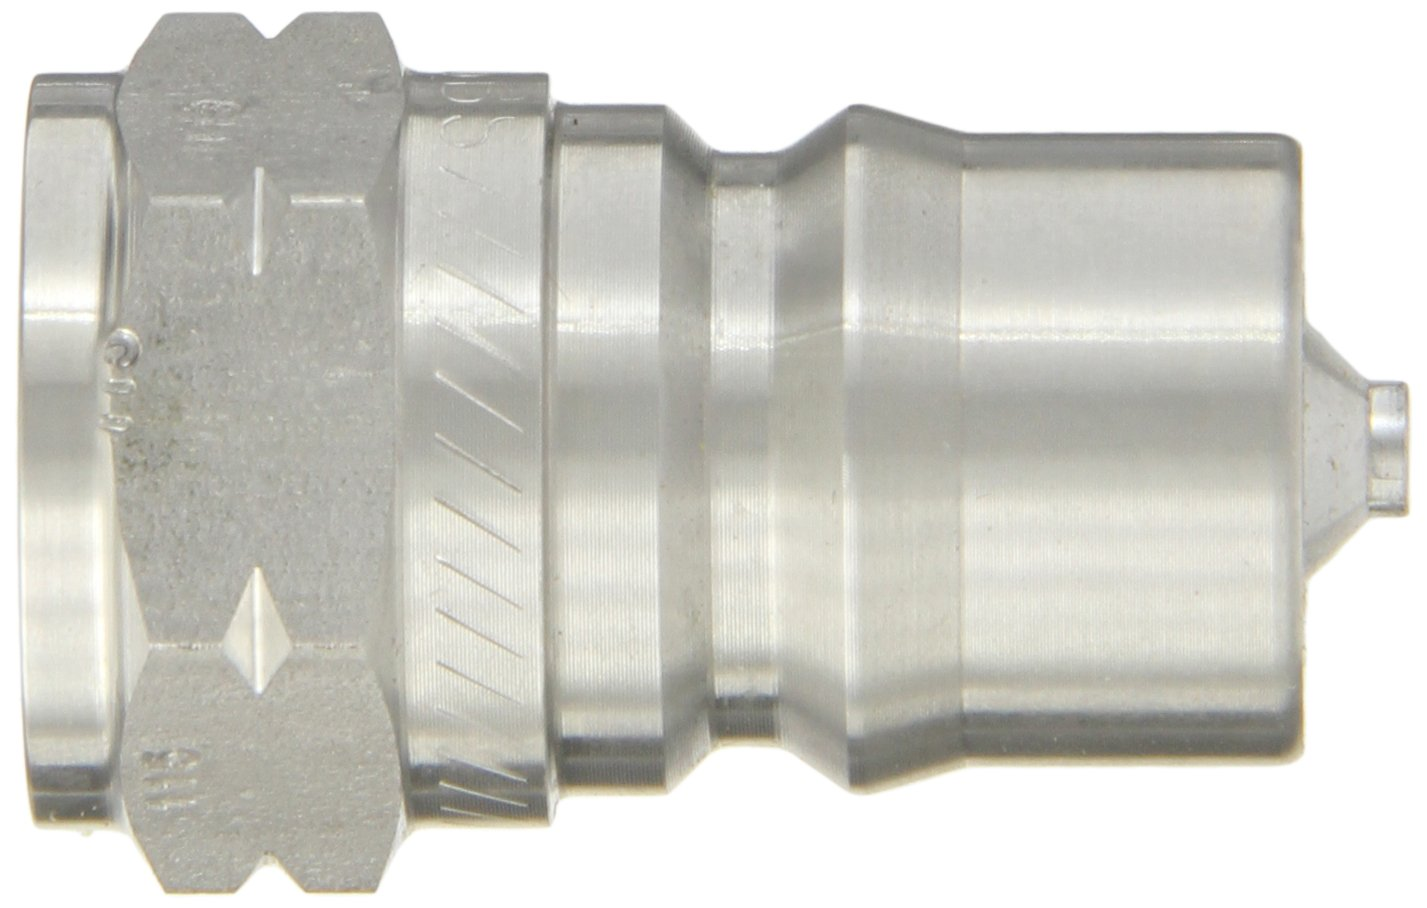 Eaton Hansen LL4KP26BS115 Stainless Steel 303 ISO-B Interchange Hydraulic Fitting 1//2-14 BSPP Female Plug with Valve PTFE Seal 1//2-14 BSPP Female 1//2 Body 1//2 Body